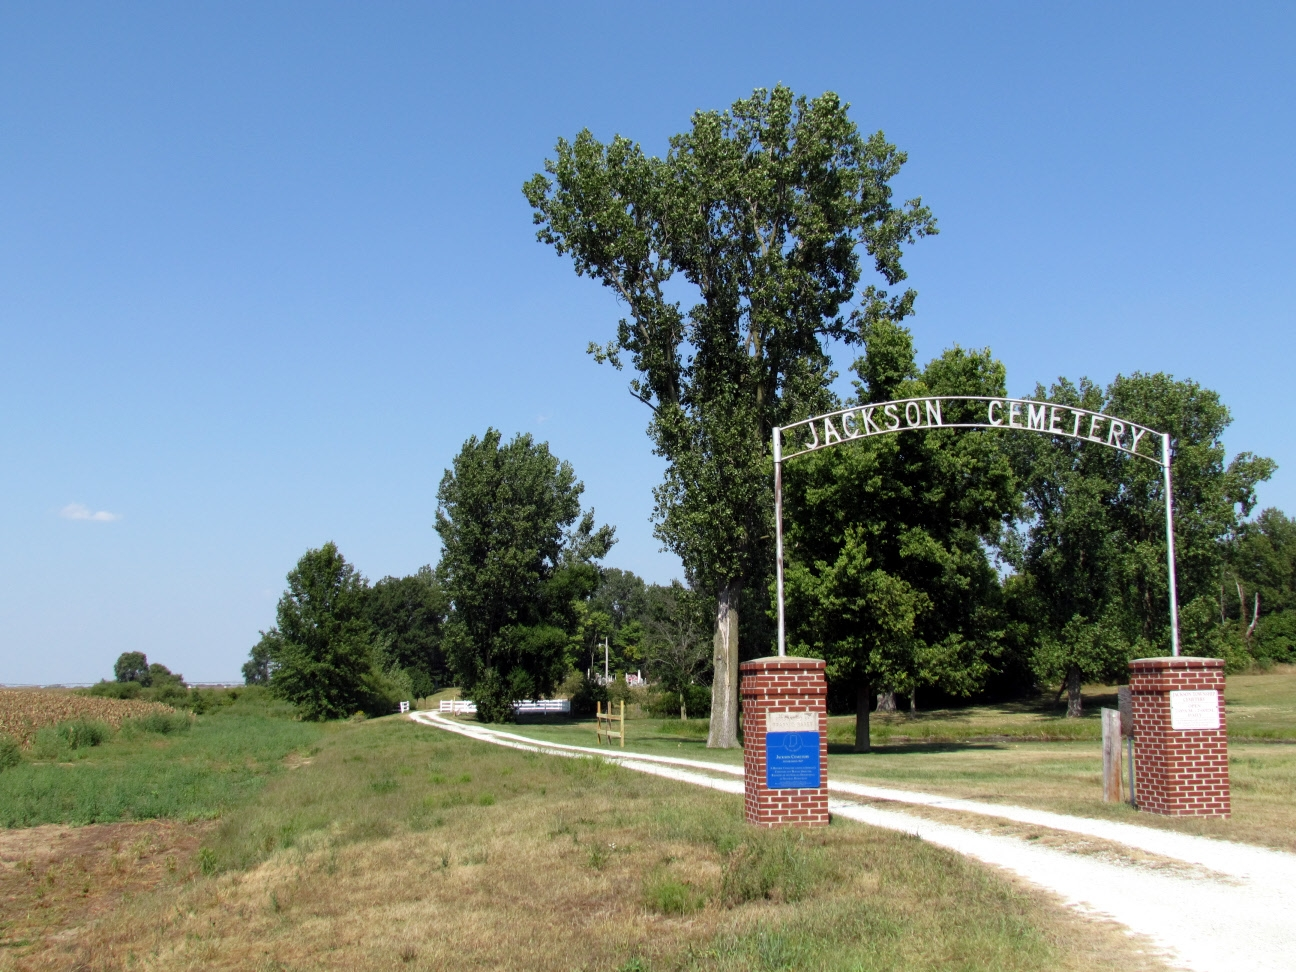 Entrance and driveway to Jackson Cemetery